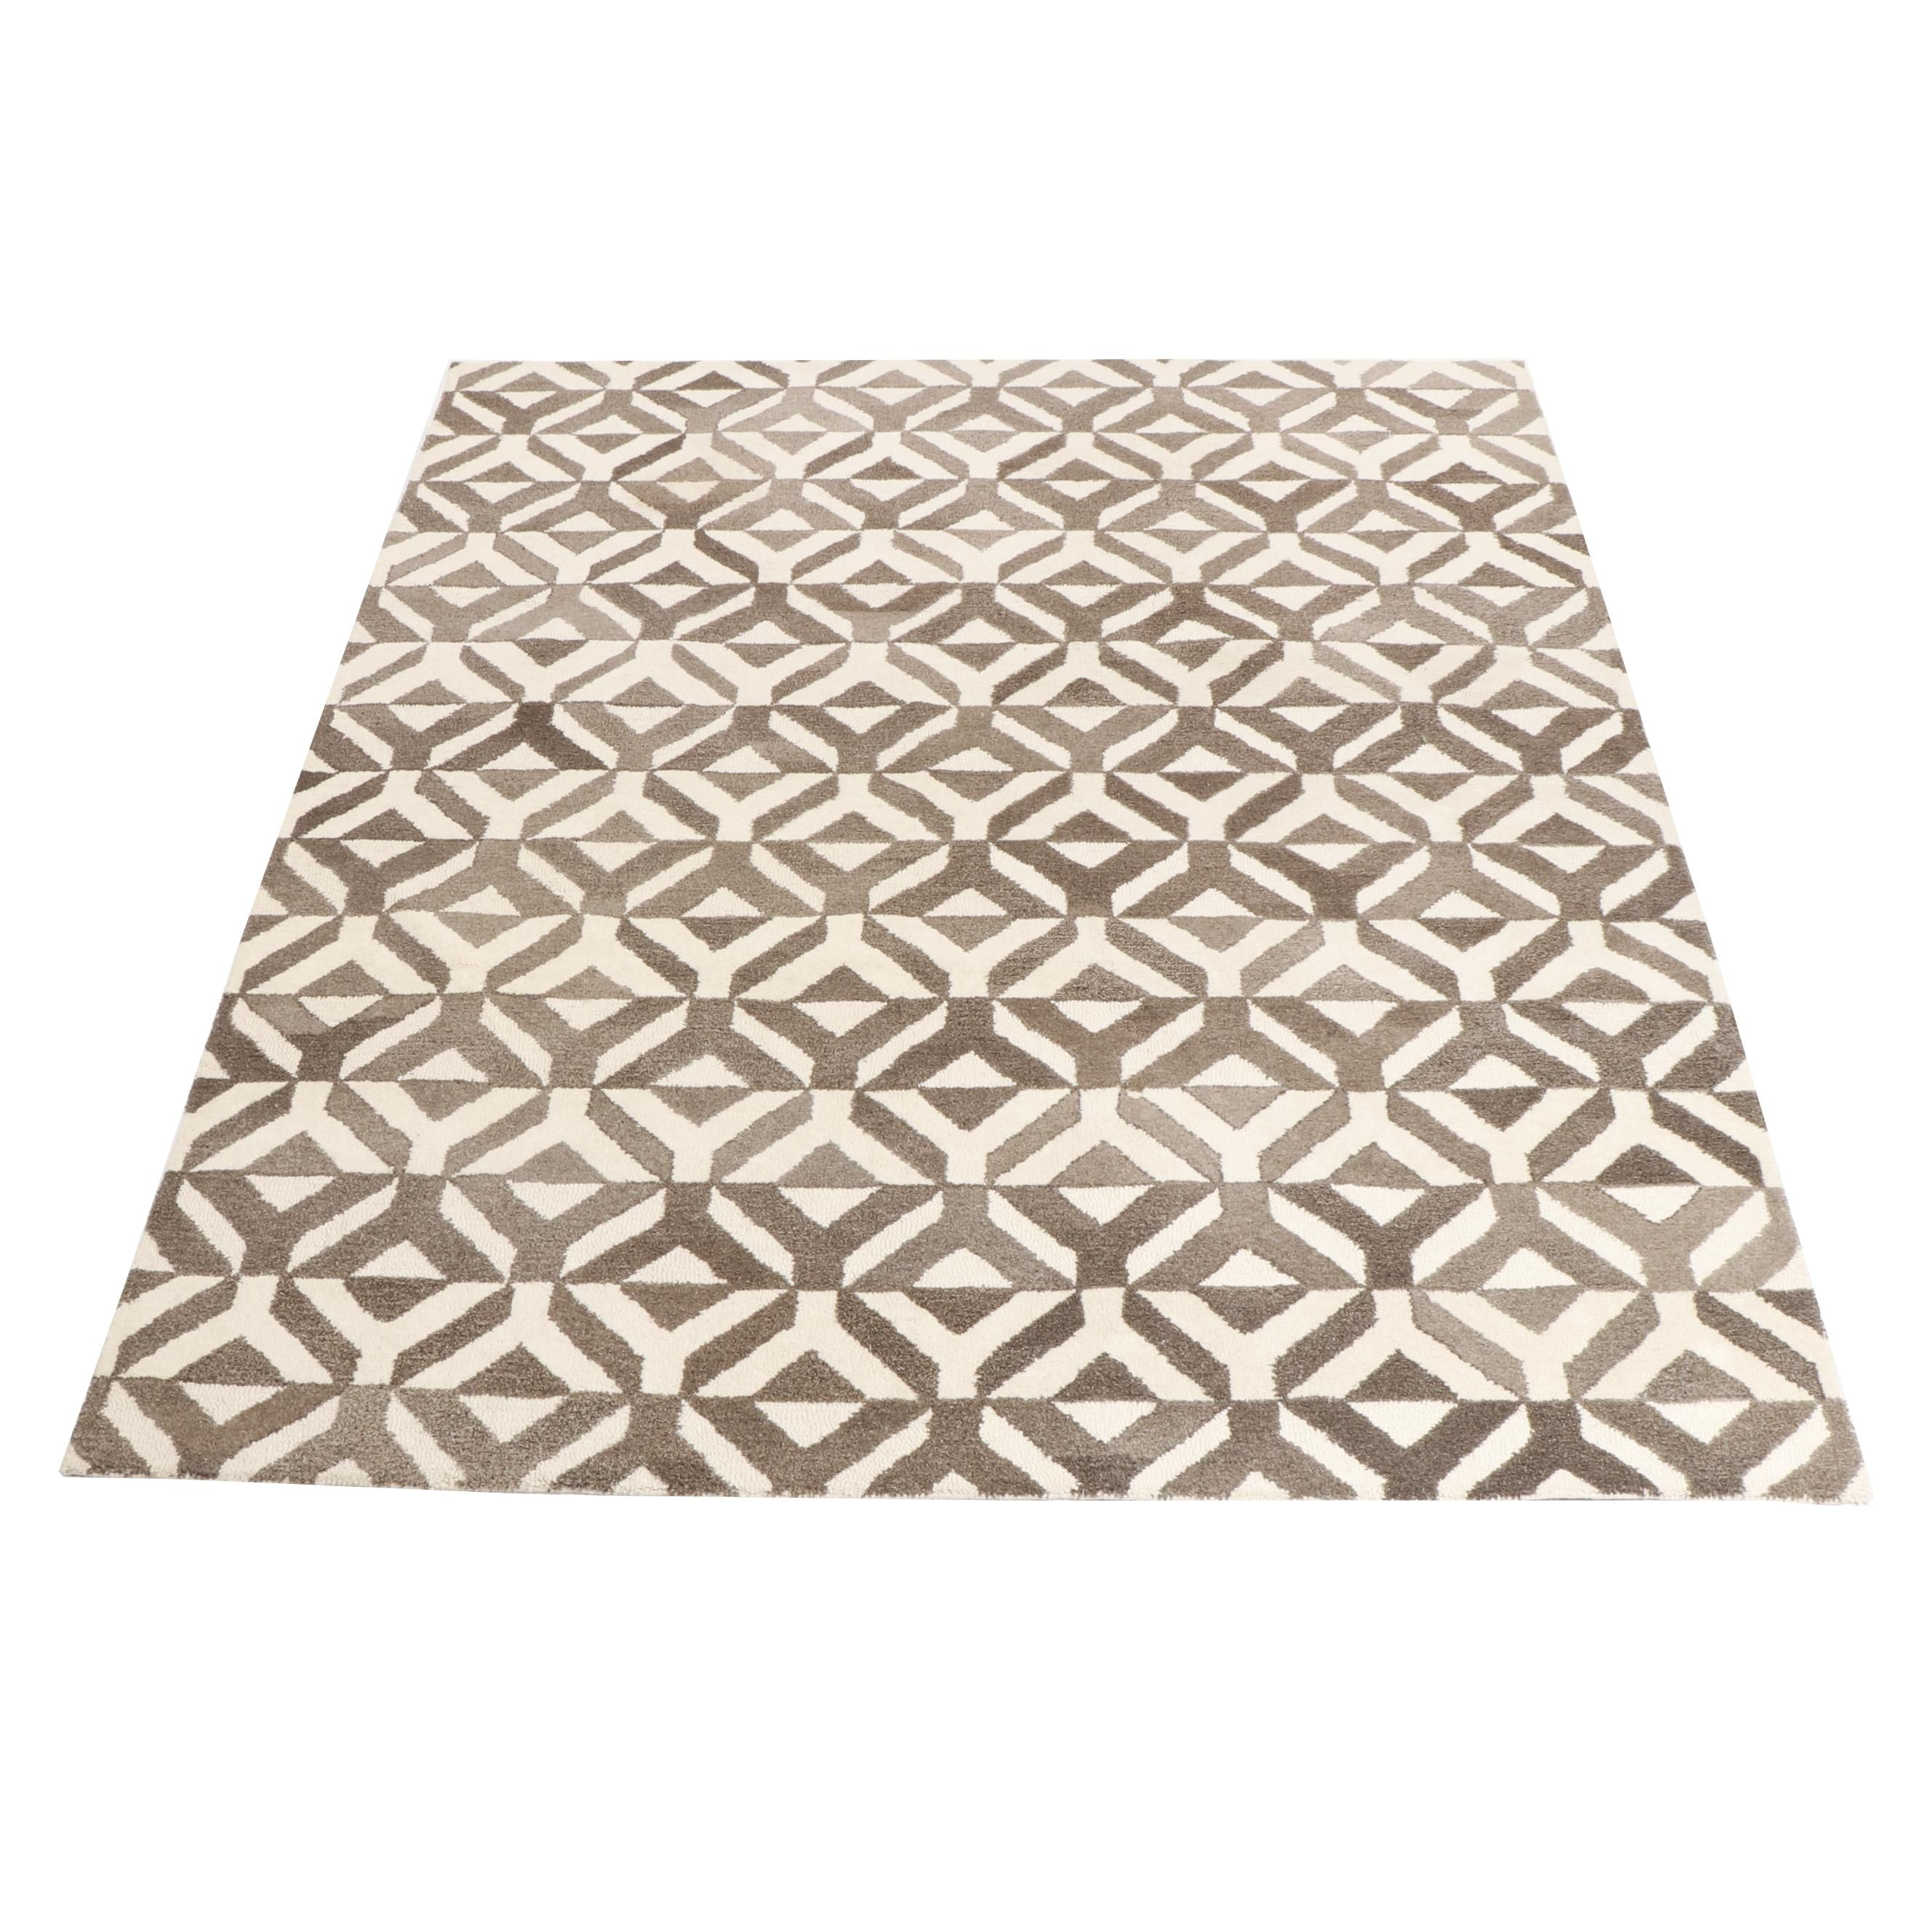 "Tufted West Elm ""Marquis"" Indian Wool Area Rug"